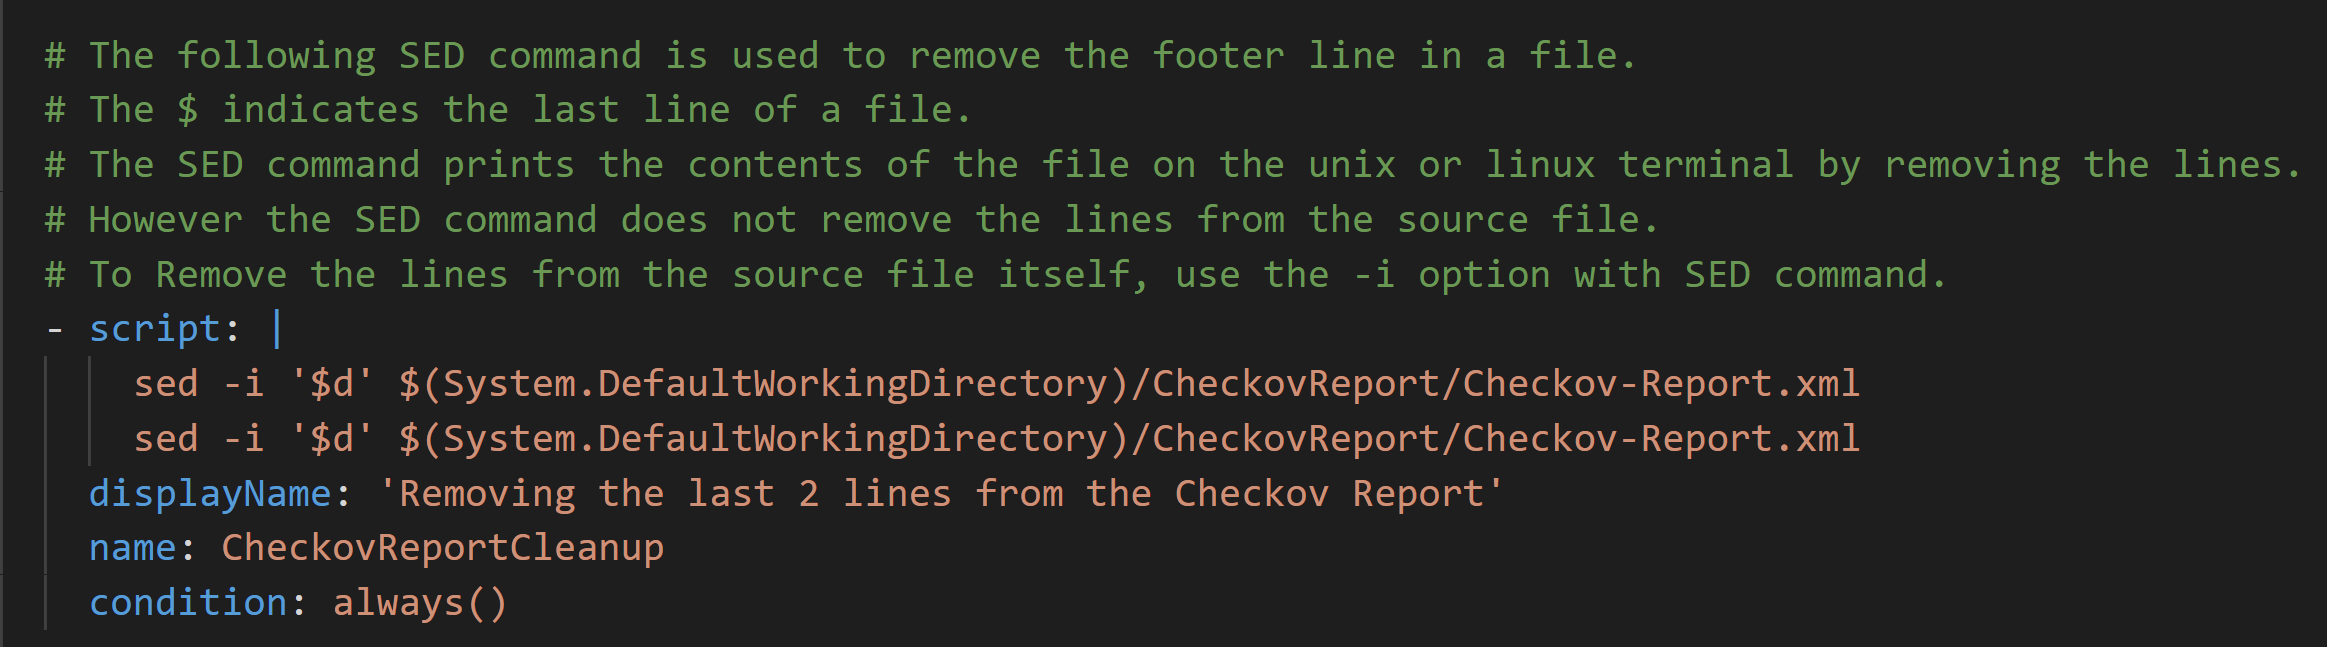 Checkov - Test Results - Line Removal Script